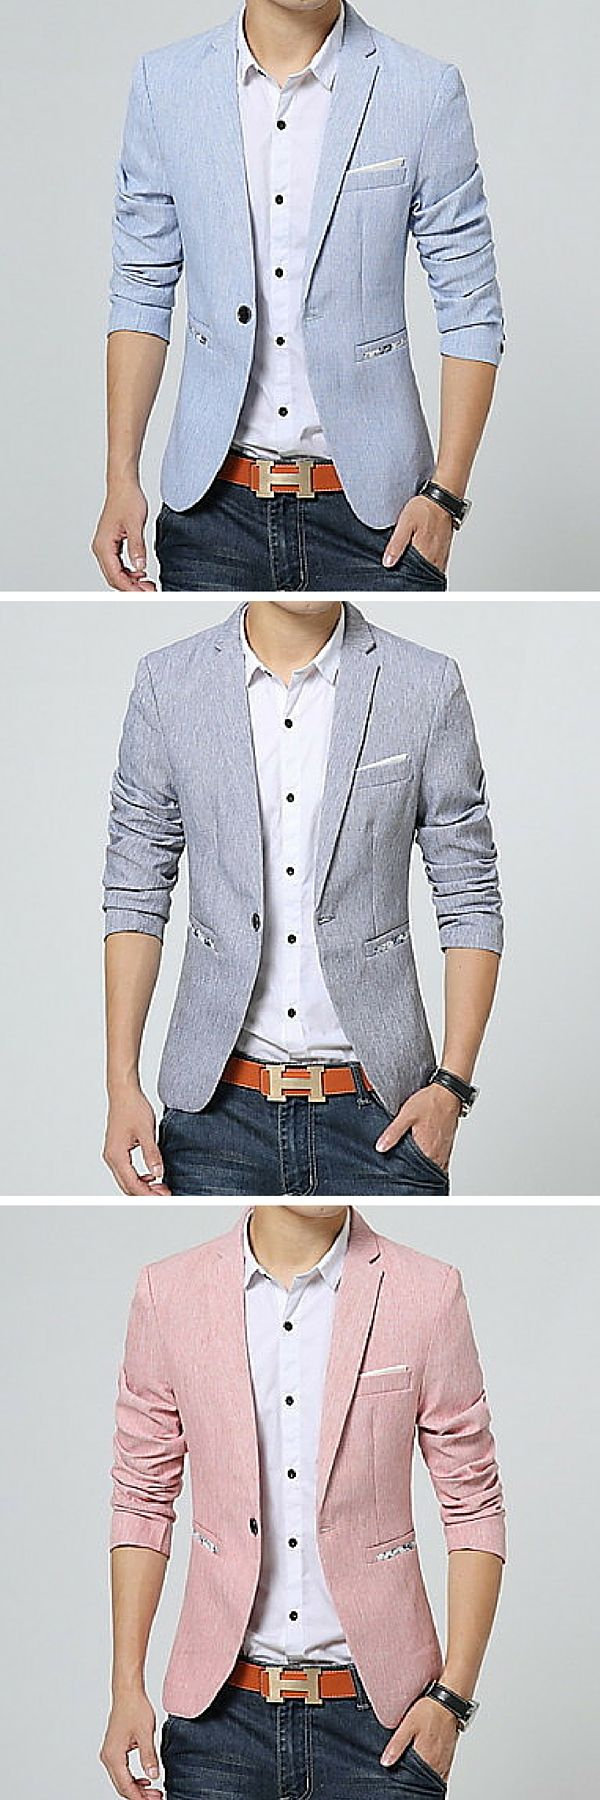 This cotton blazer is a must-have for any guy with style. It's an amazing weight…